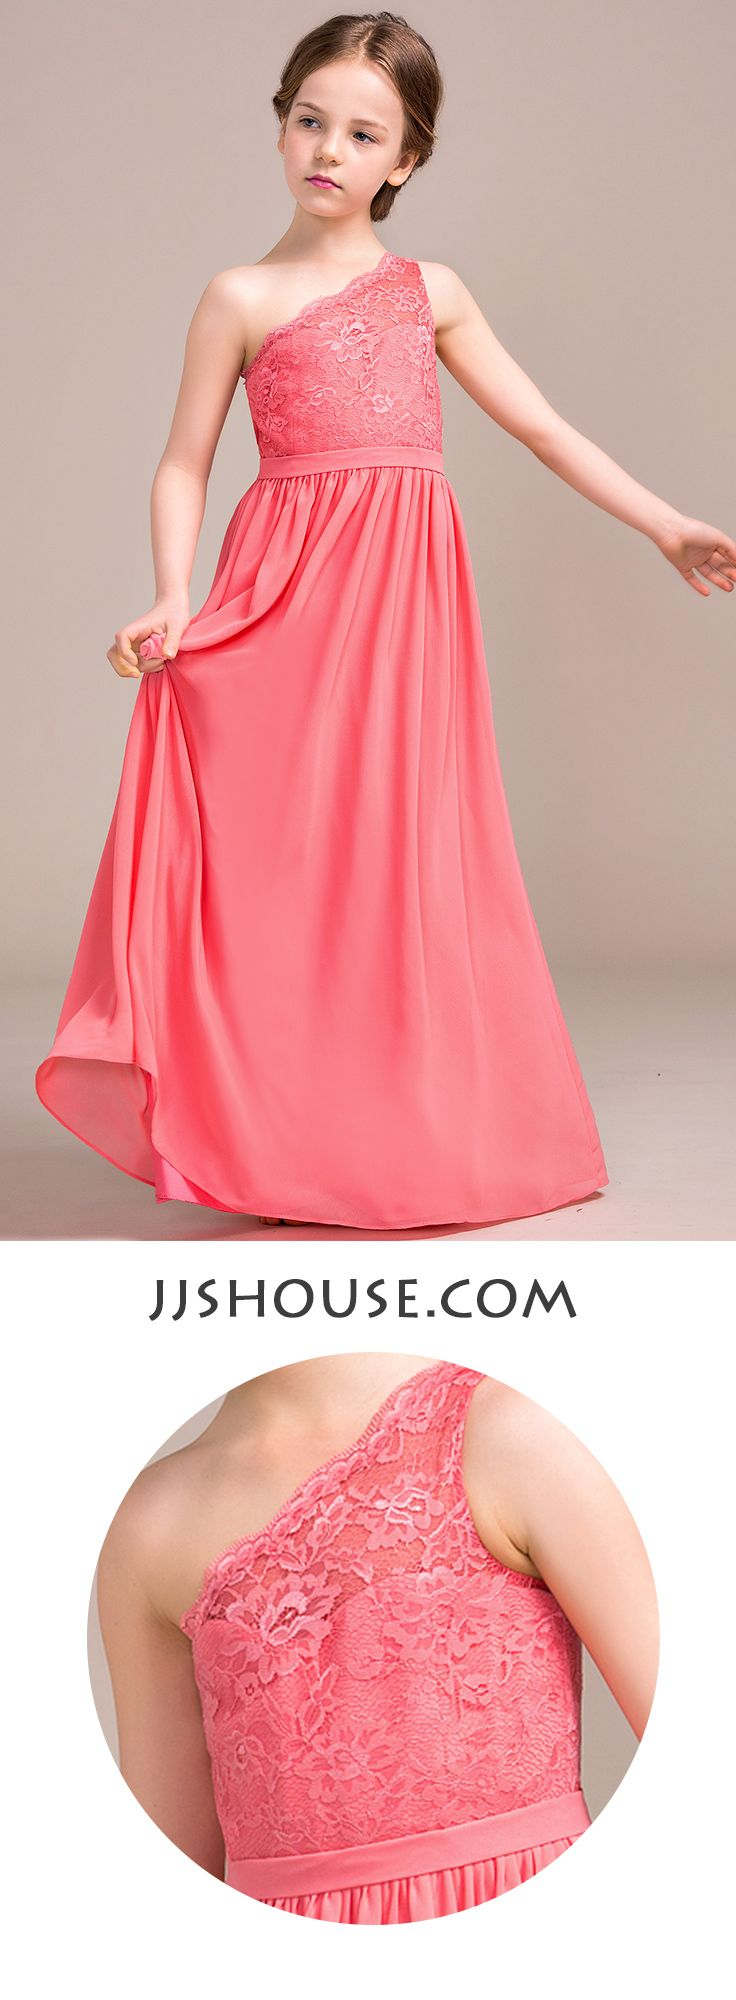 288 best images about teens on pinterest tulle dress shops and kpop a lineprincess one shoulder floor length chiffon lace junior bridesmaid dress 009081131 ombrellifo Choice Image